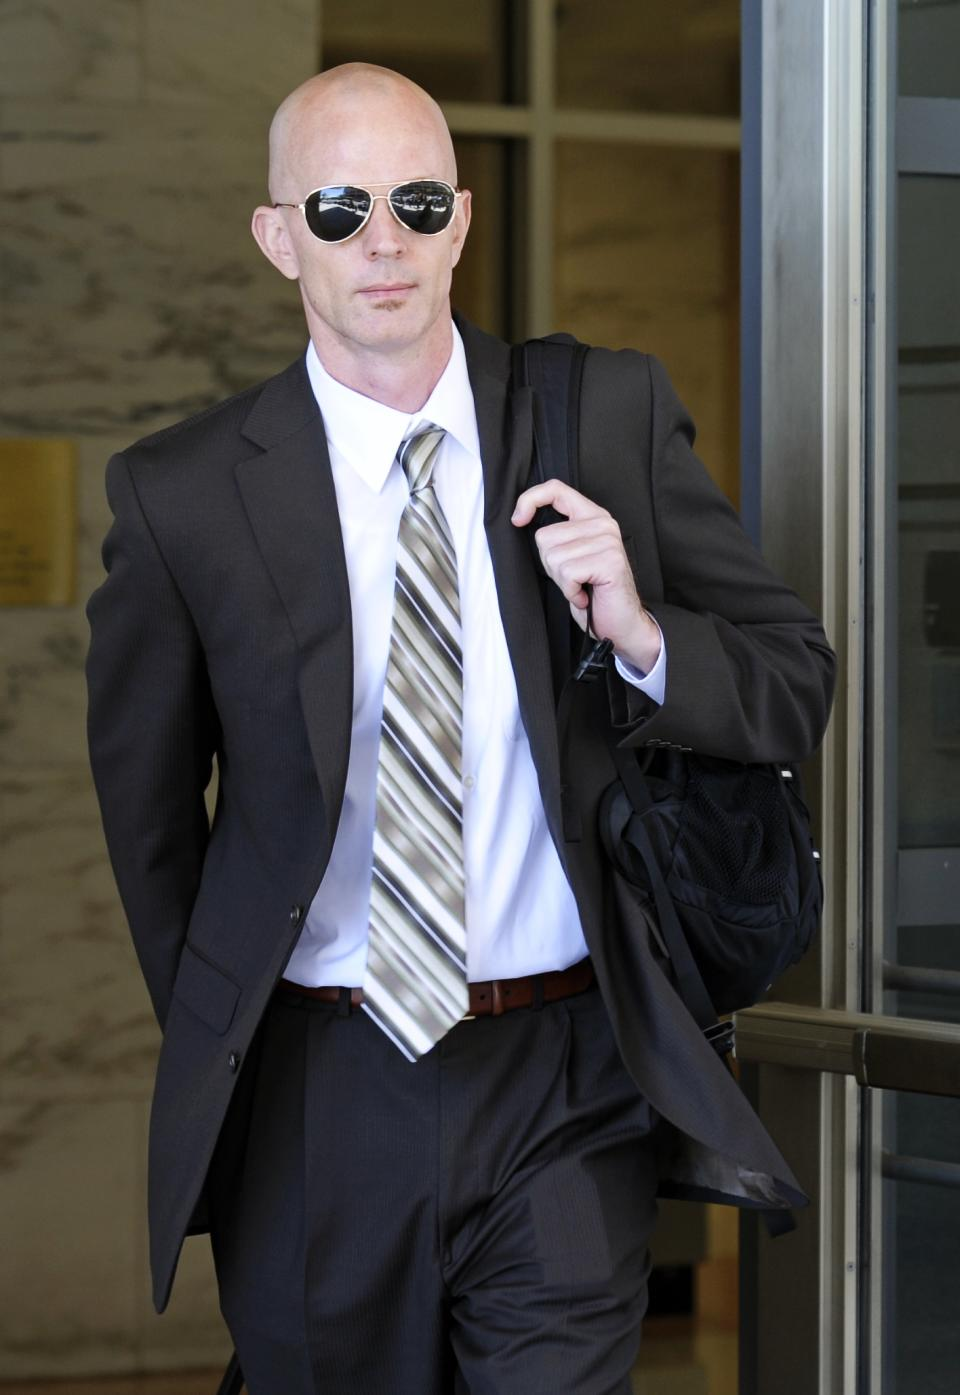 Jeff Novitzky, and agent for the Food and Drug Administration (FDA), exits federal court in Washington, Thursday, July 14, 2011, after a mistrial was declared in the government's perjury case against former Major League Baseball pitcher Roger Clemens. (AP Photo/Cliff Owen)